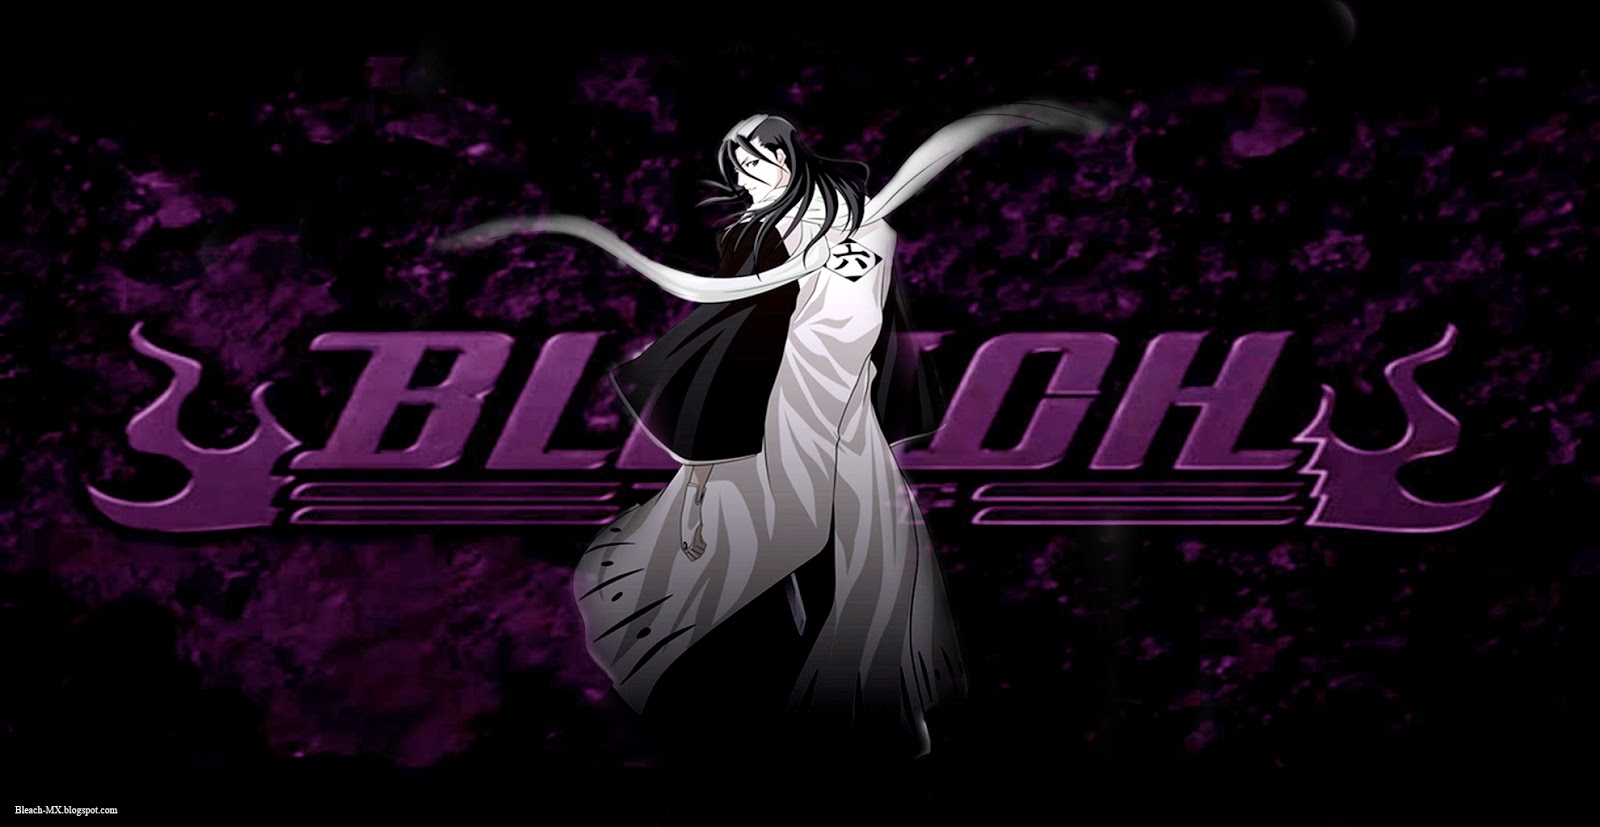 Byakuya Kuchiki Wallpaper HD